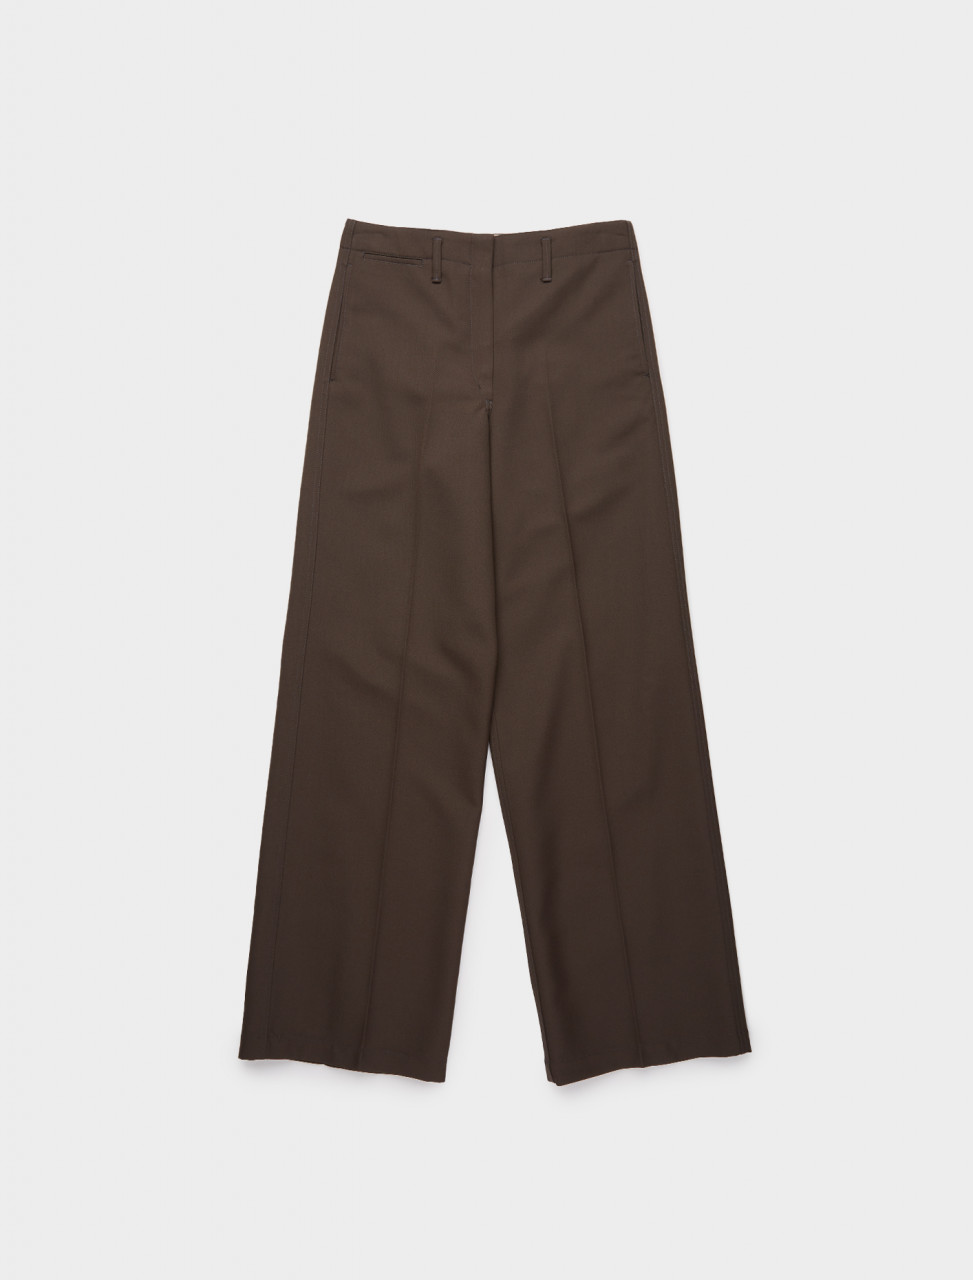 218-W-203-PA287-LF483-487 LEMAIRE STRAIGHT PANTS DARK BROWN